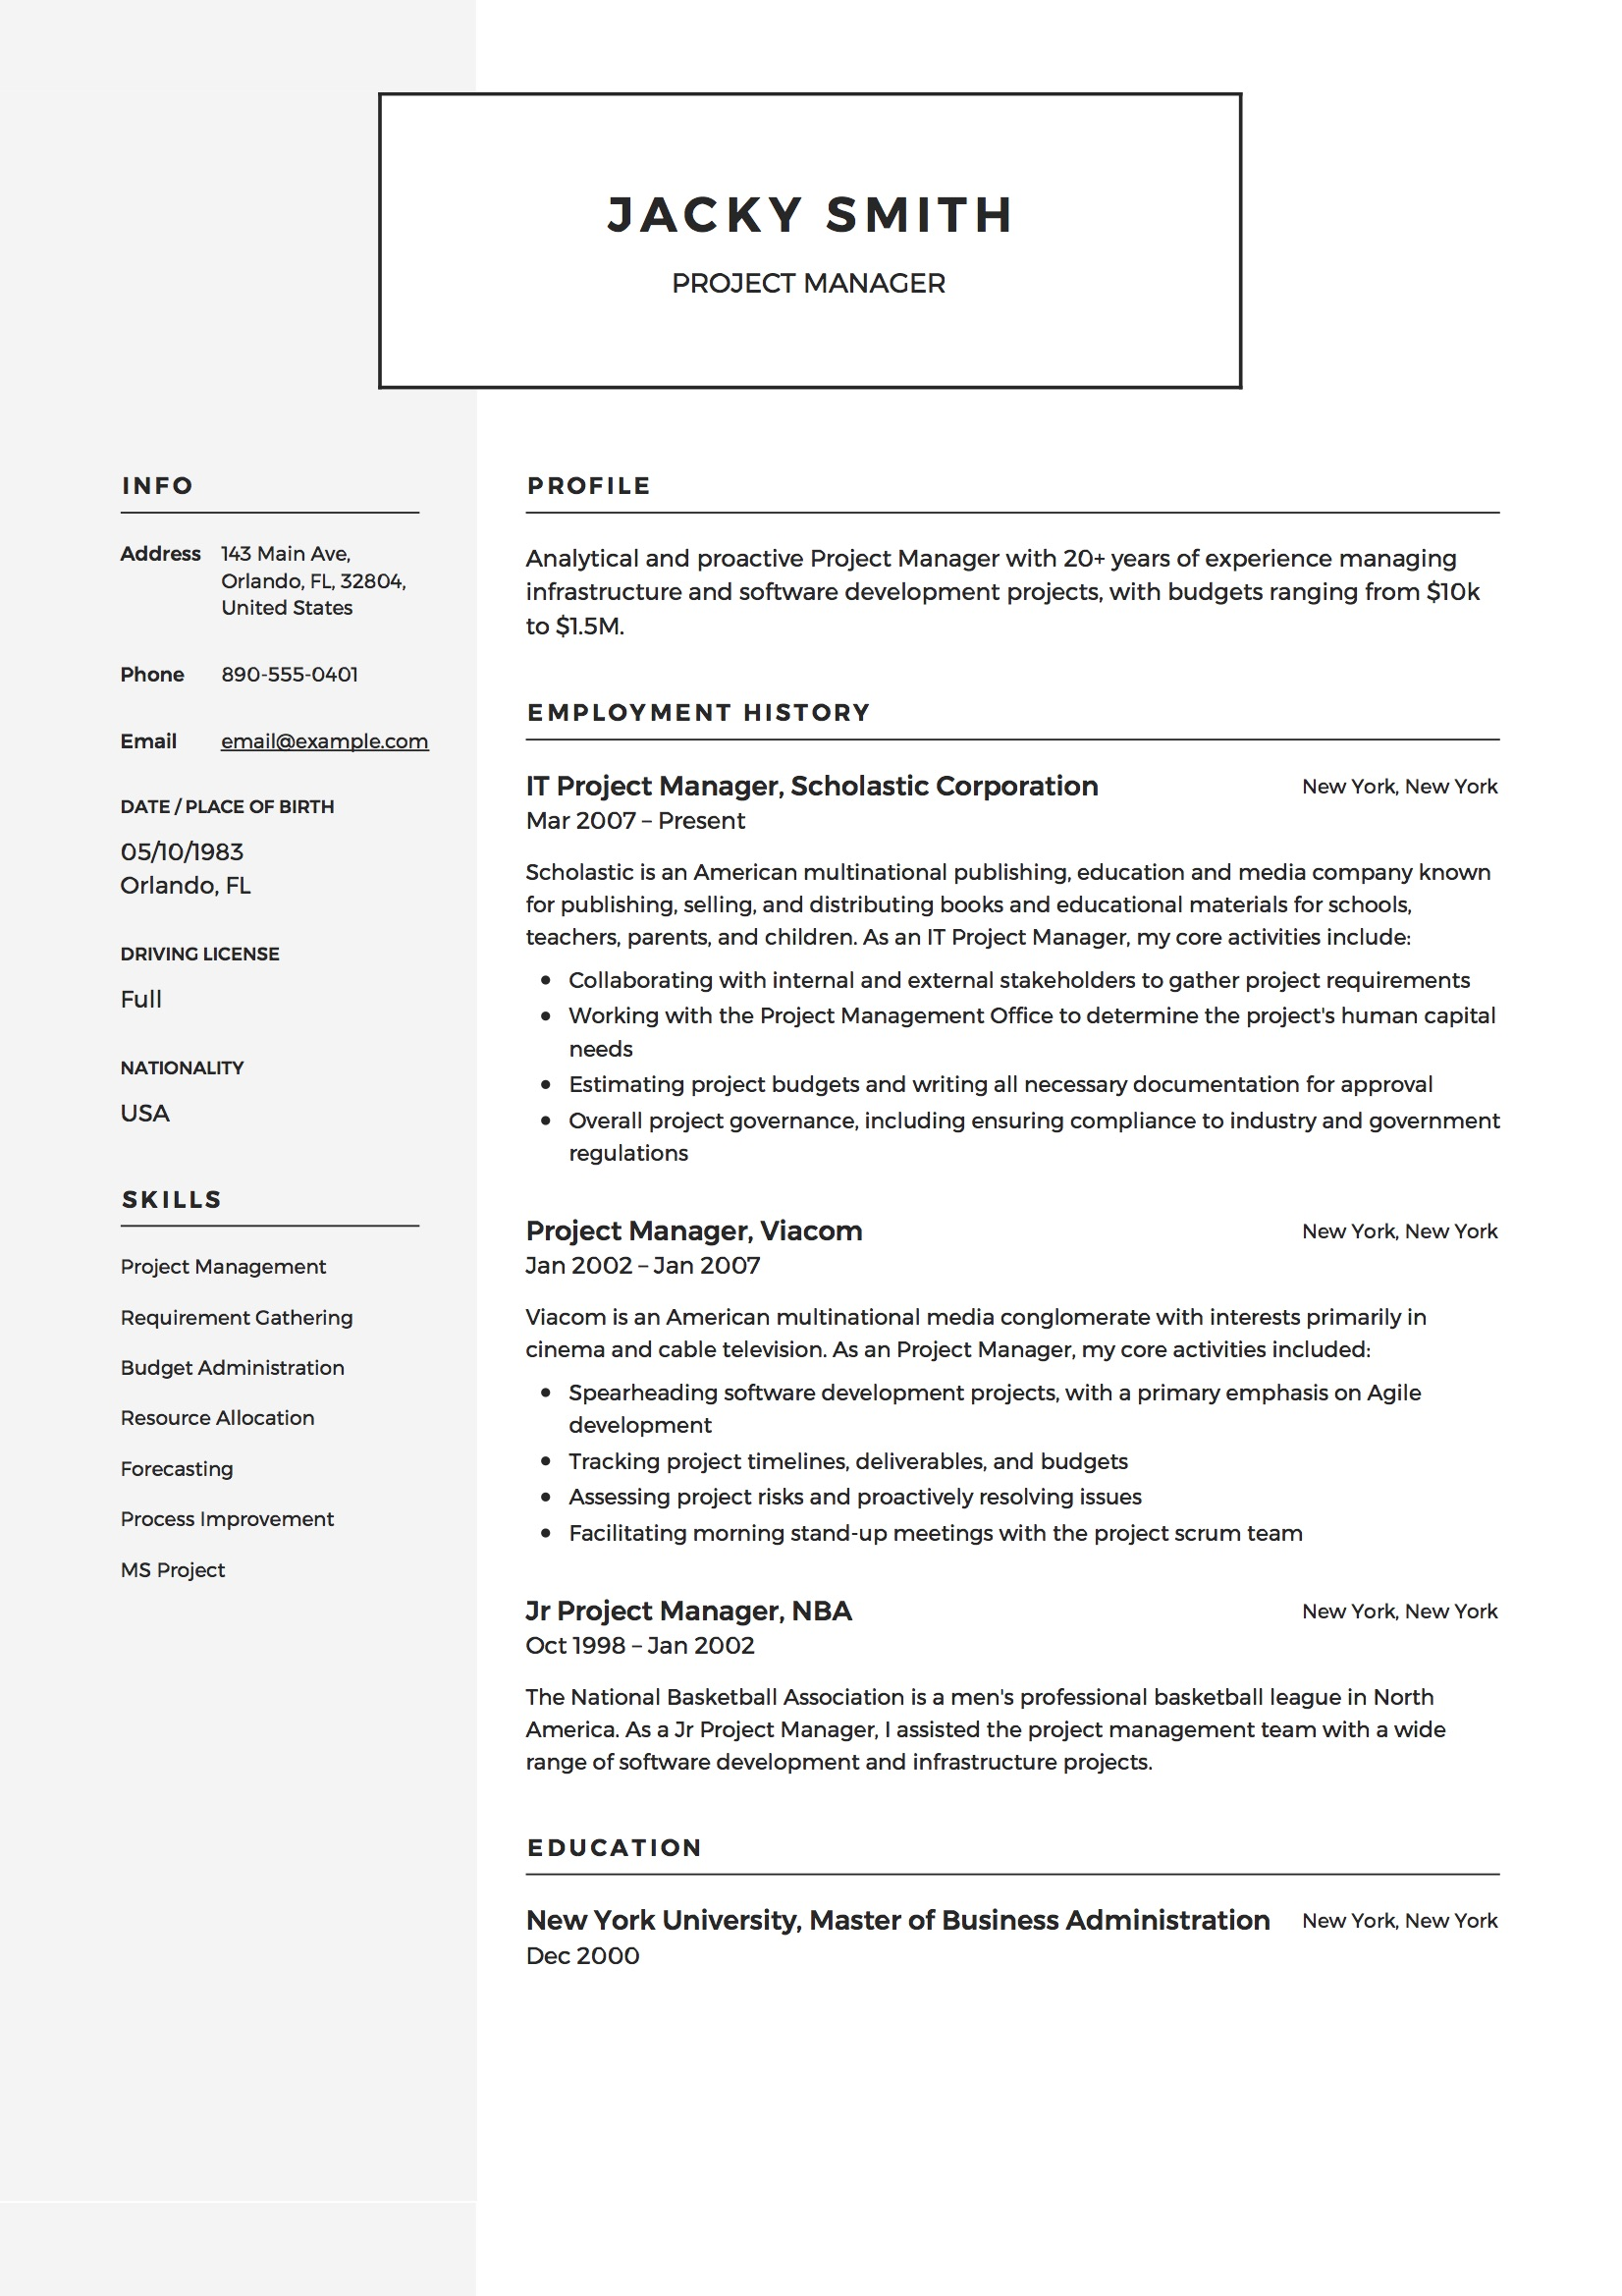 project manager resume examples full guide pdf word objective example oil and gas Resume Project Manager Resume Objective